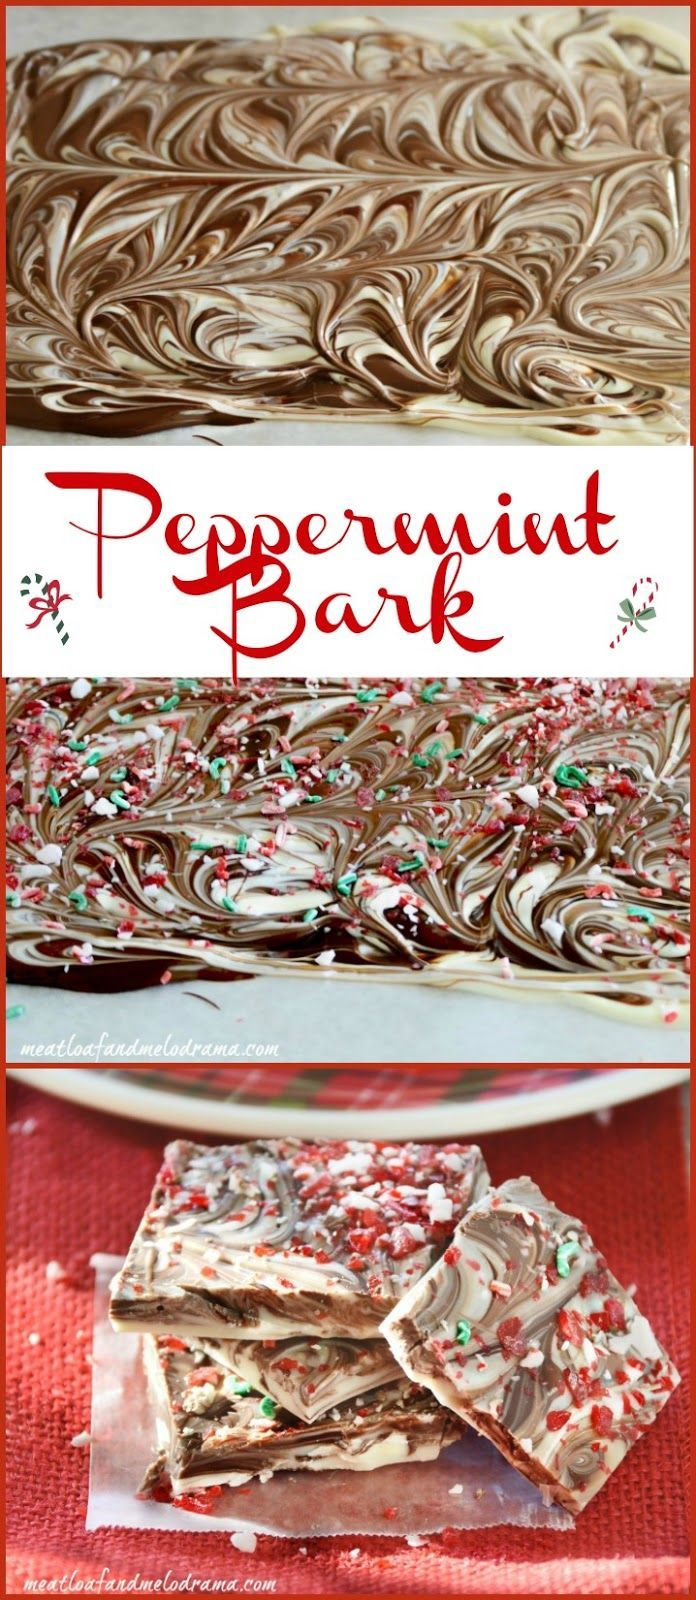 Peppermint Bark is an easy no bake Christmas treat! | Christmas ...